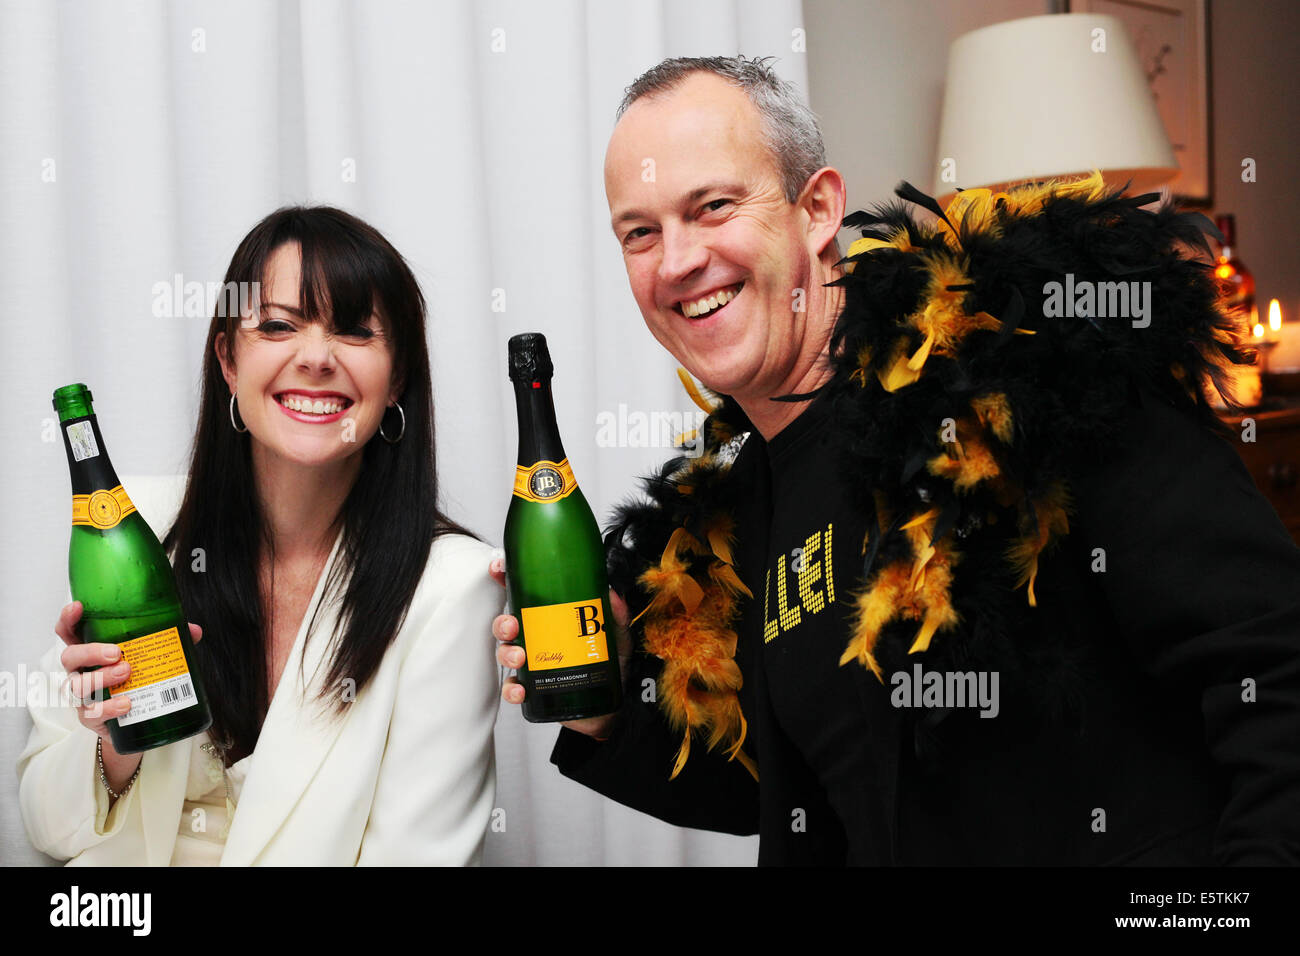 Party couple posing with Champaign bottles and smiling - Stock Image